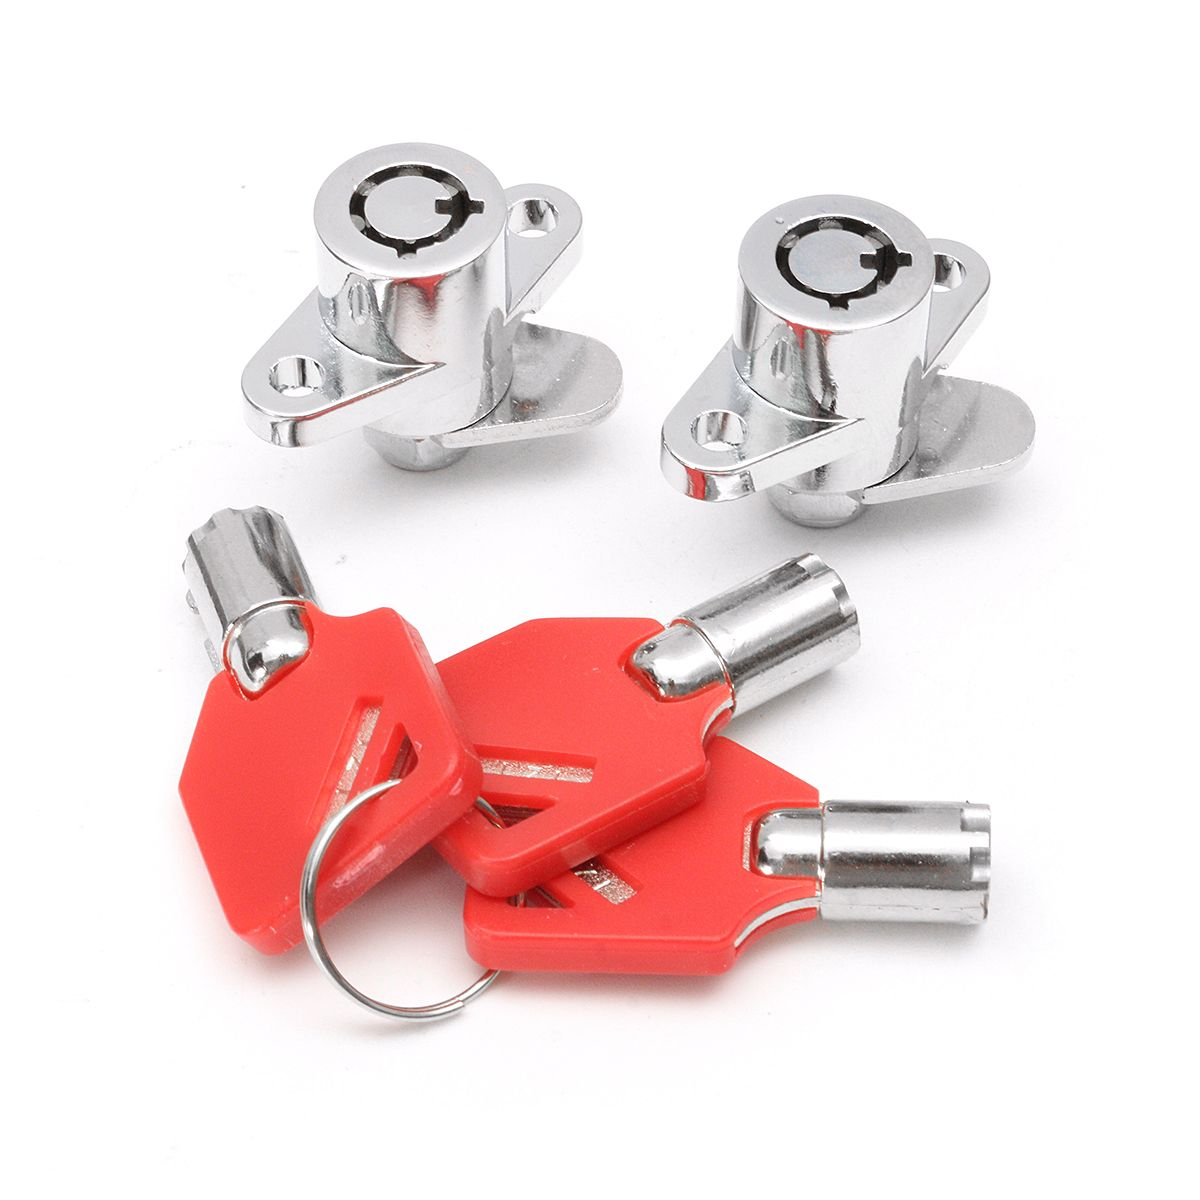 2pcs Saddlebags Lock With Keys Set For Harley Davidson Touring Electra King Motorcycle Accessories Parts From Automobiles Motorcycles On Banggood Com Road Glide Harley Davidson Touring Harley